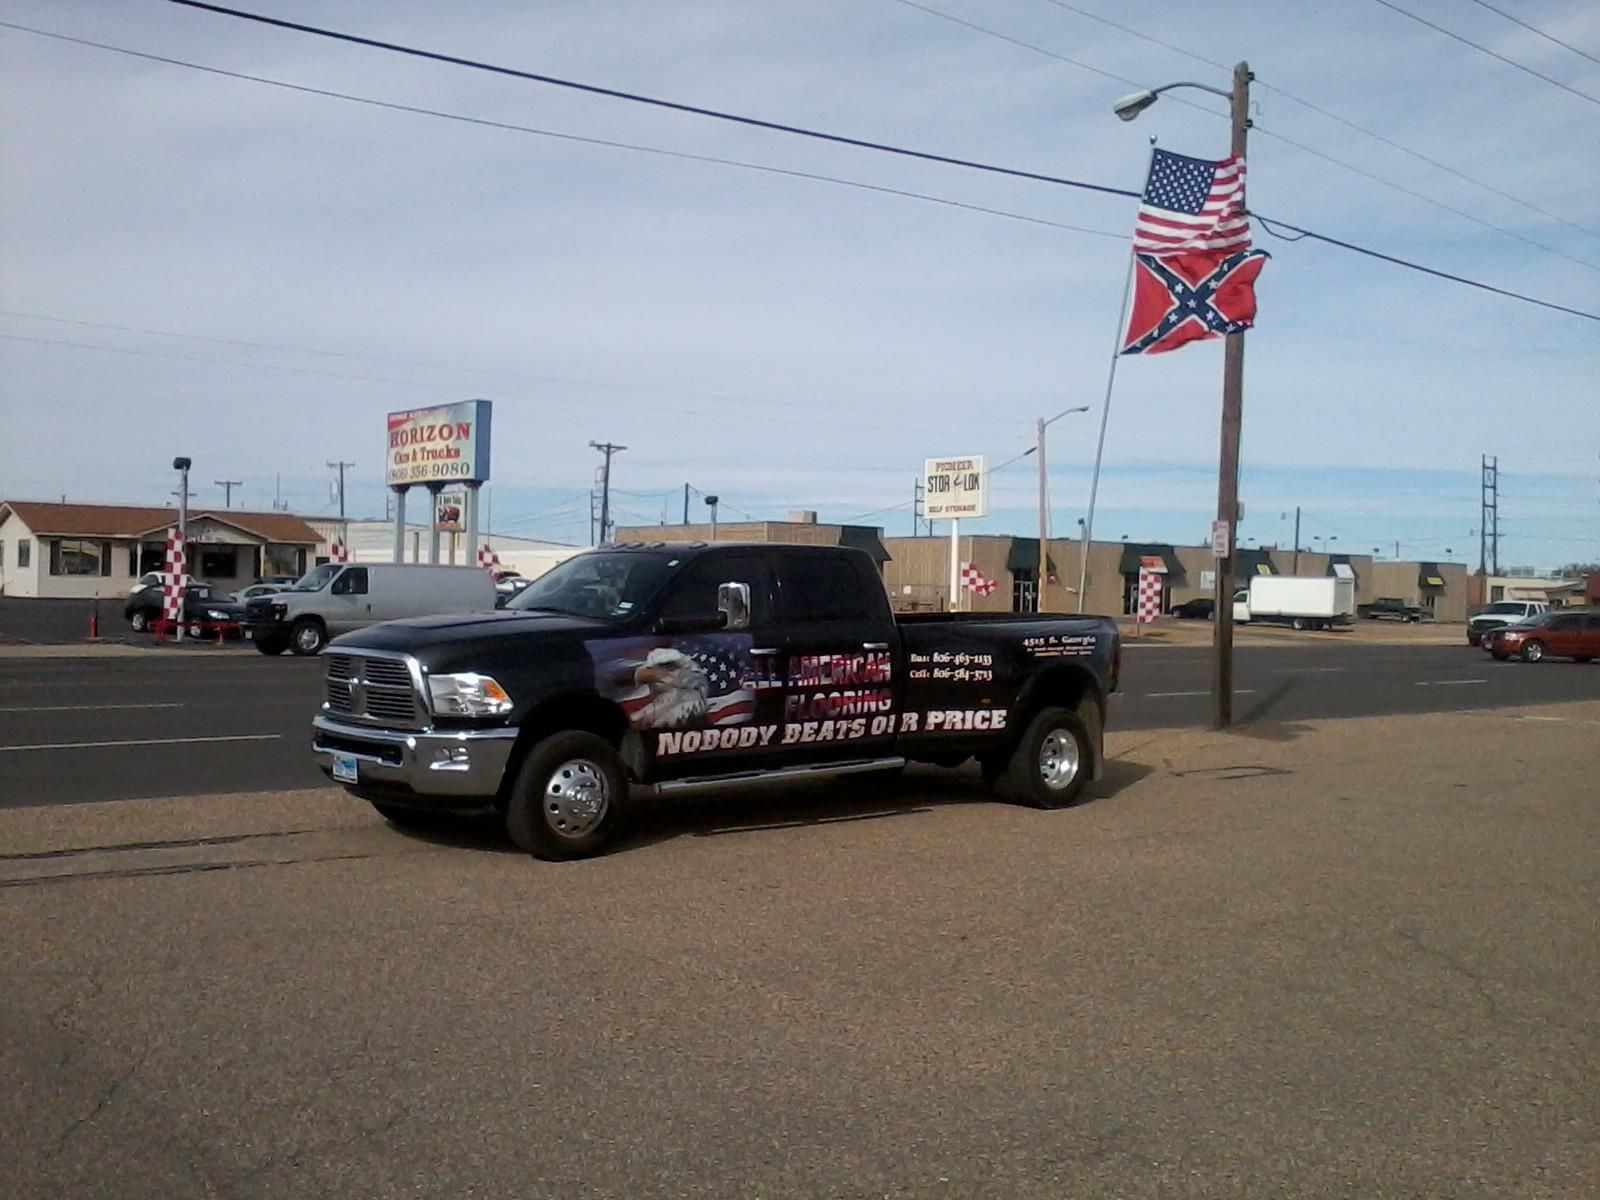 Hitch Flagpole Mount $24 95 for your Flagpole RIR parkinglotparty